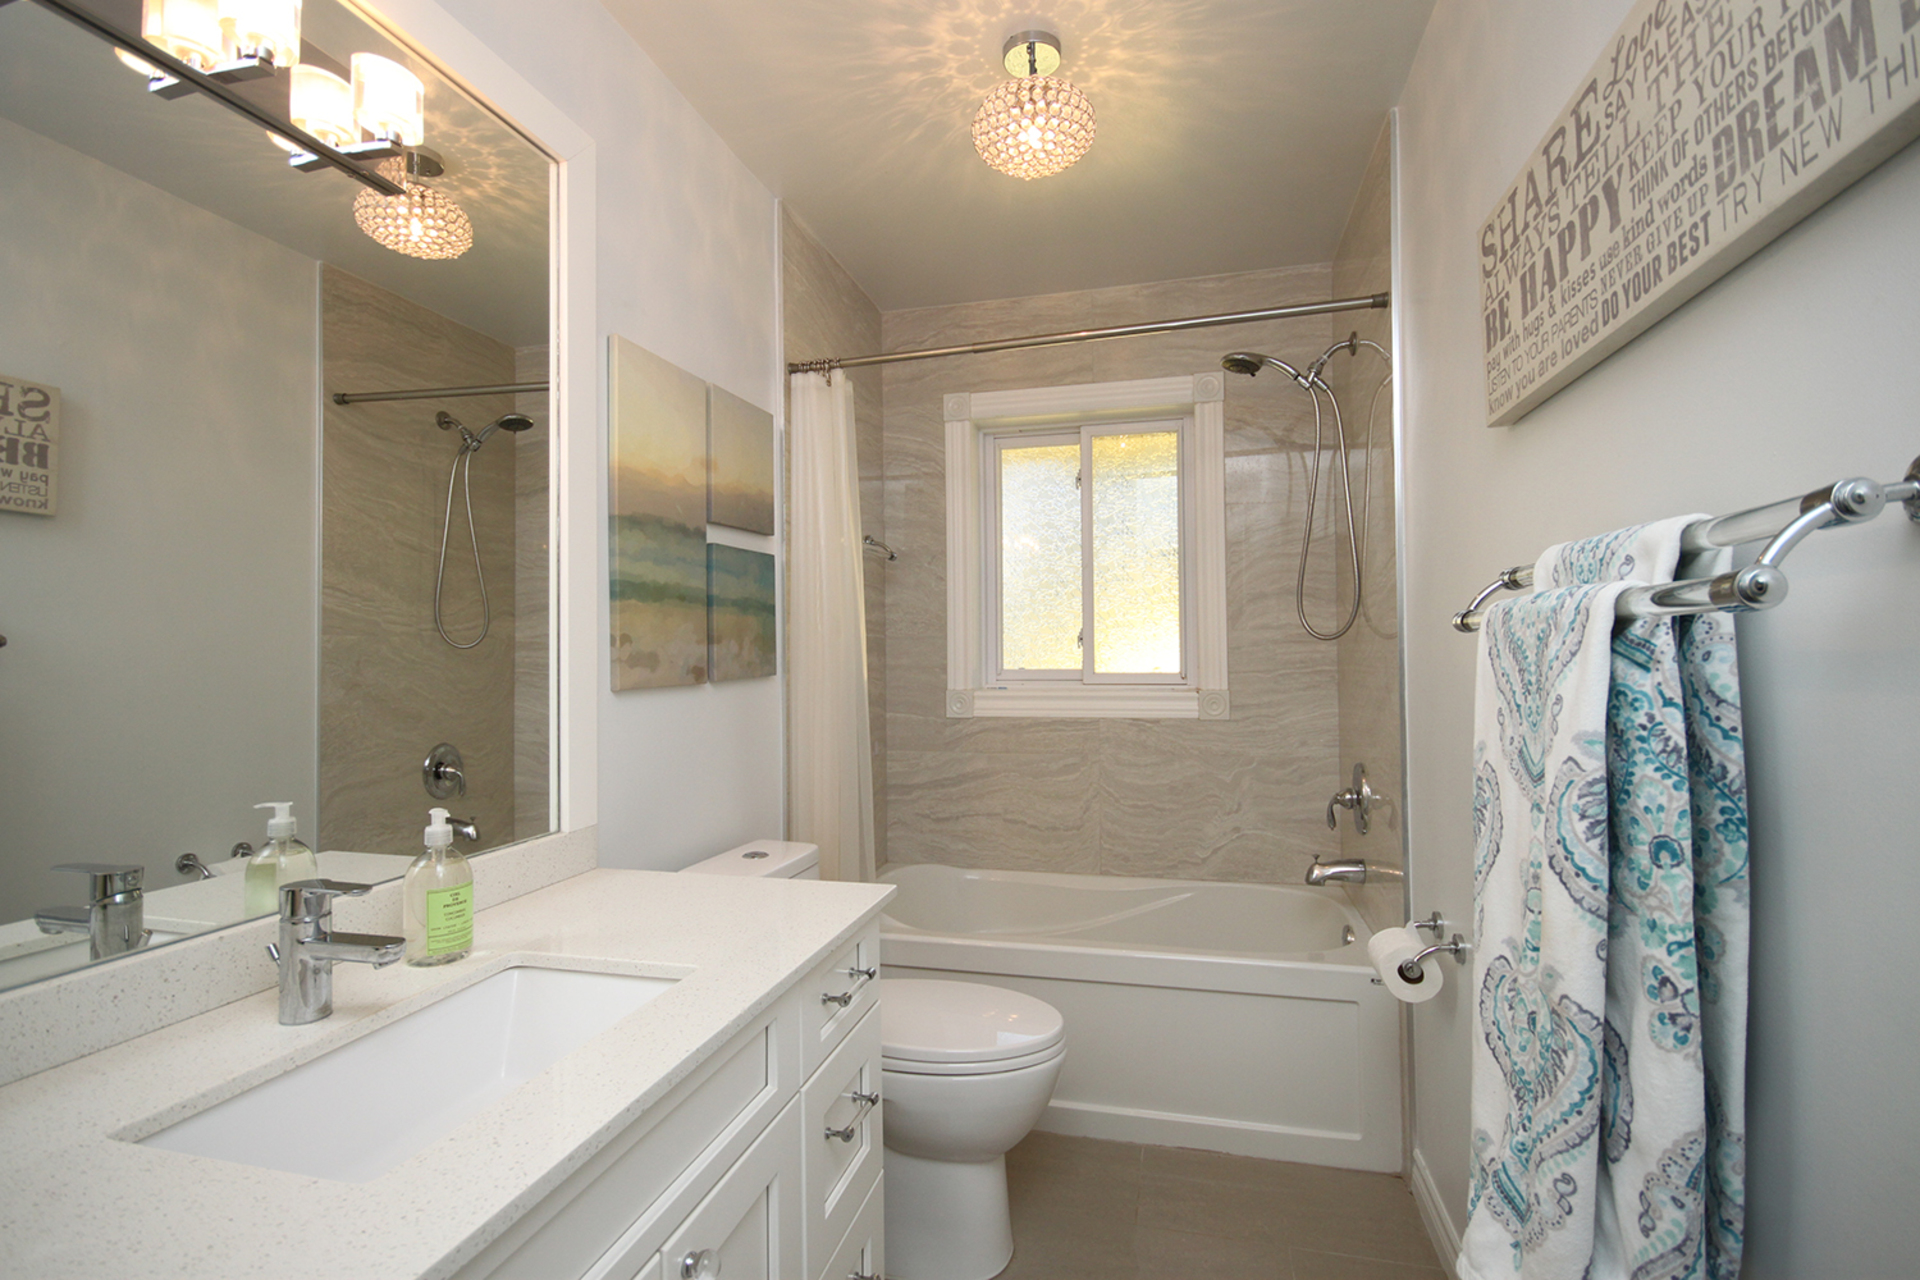 4 Piece Bathroom at 25 Dunlace Drive, St. Andrew-Windfields, Toronto